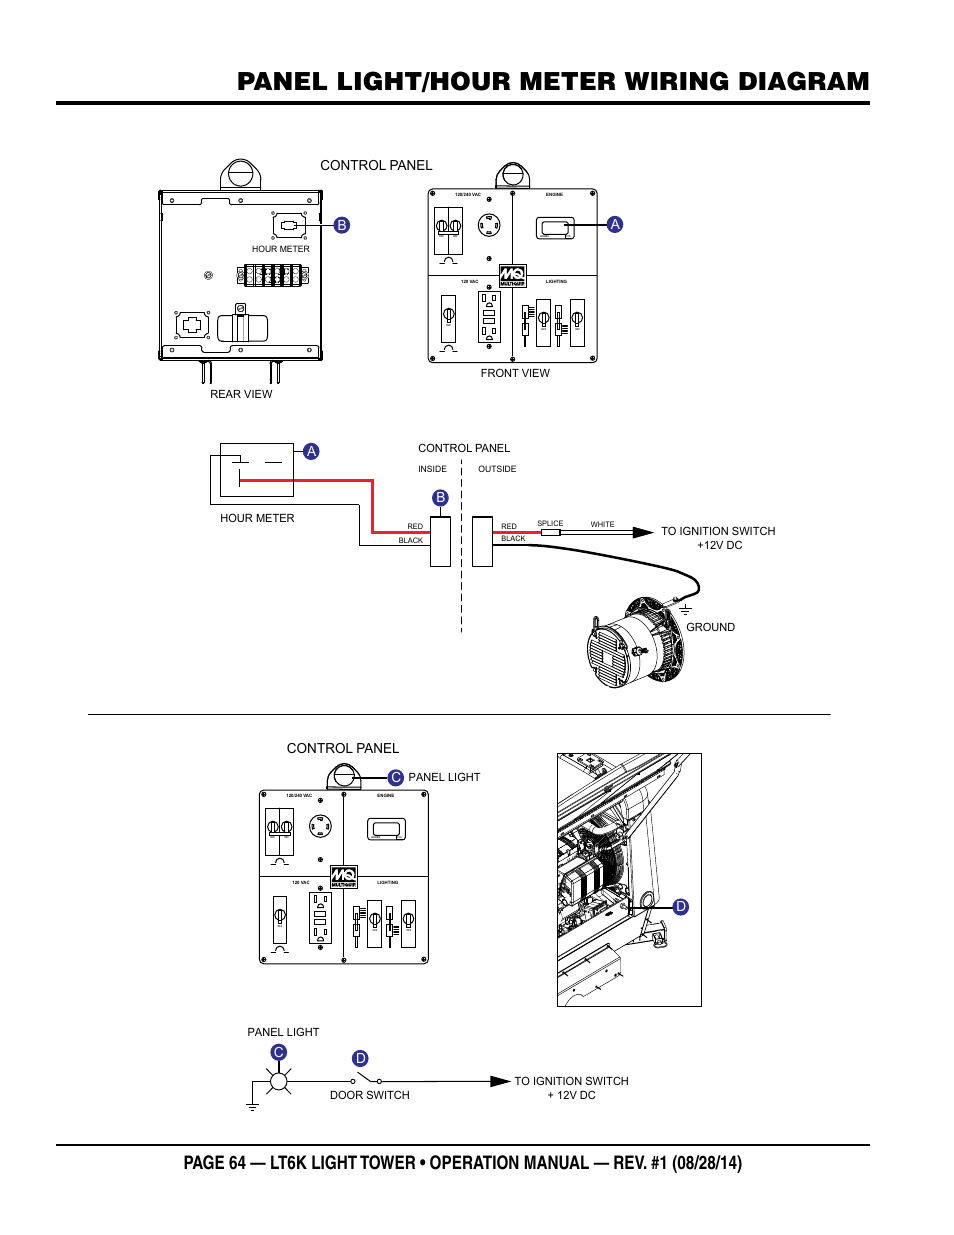 Panel light/hour meter wiring diagram, Cd d a, Control panel | Multiquip LT6K User Manual | Page 64 / 70